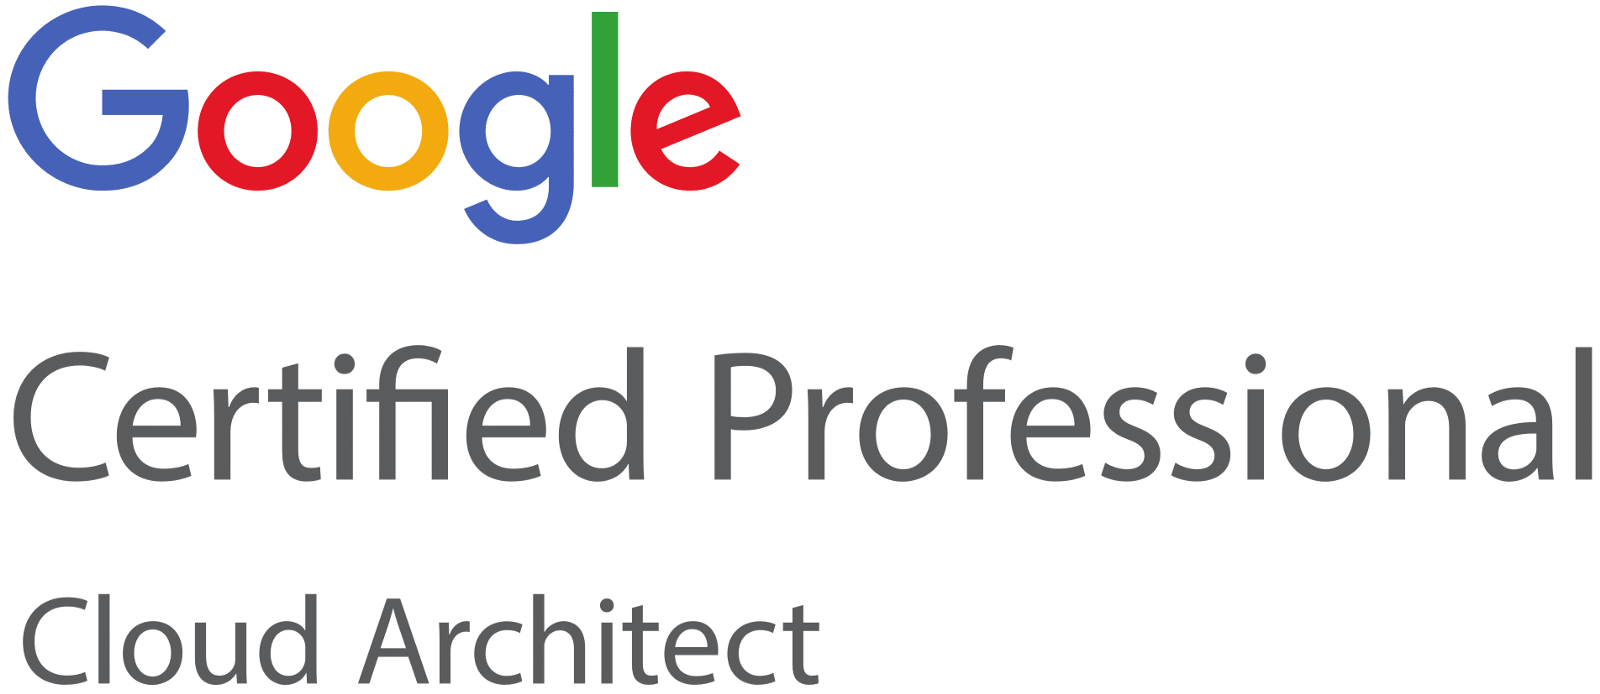 Google Certified Professional Cloud Architect Study Resources